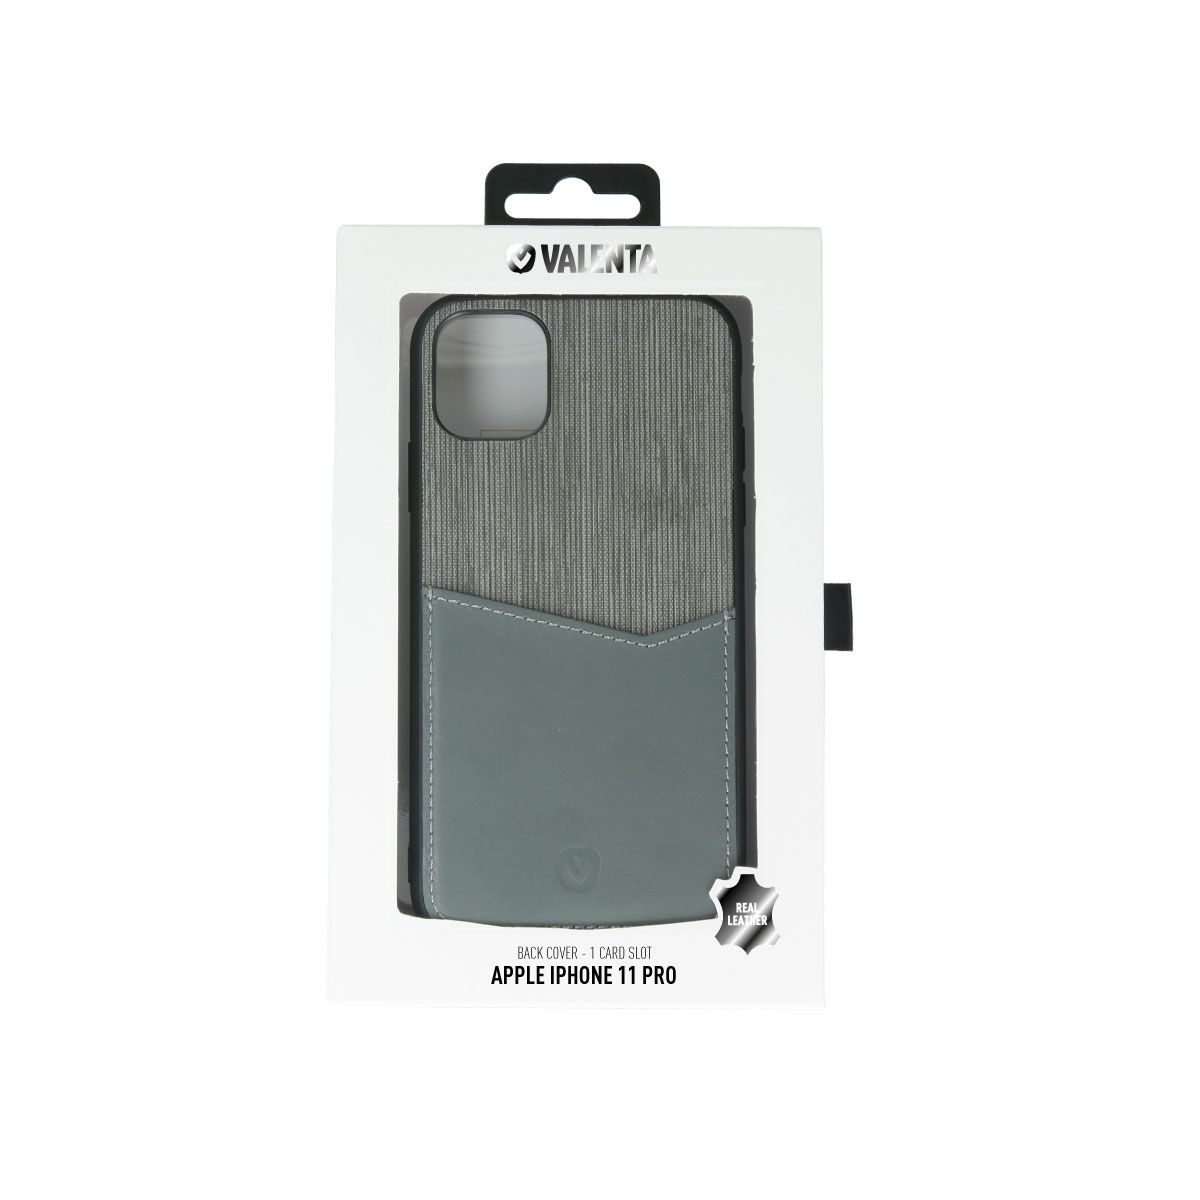 back cover grau card slot iphone 11 pro